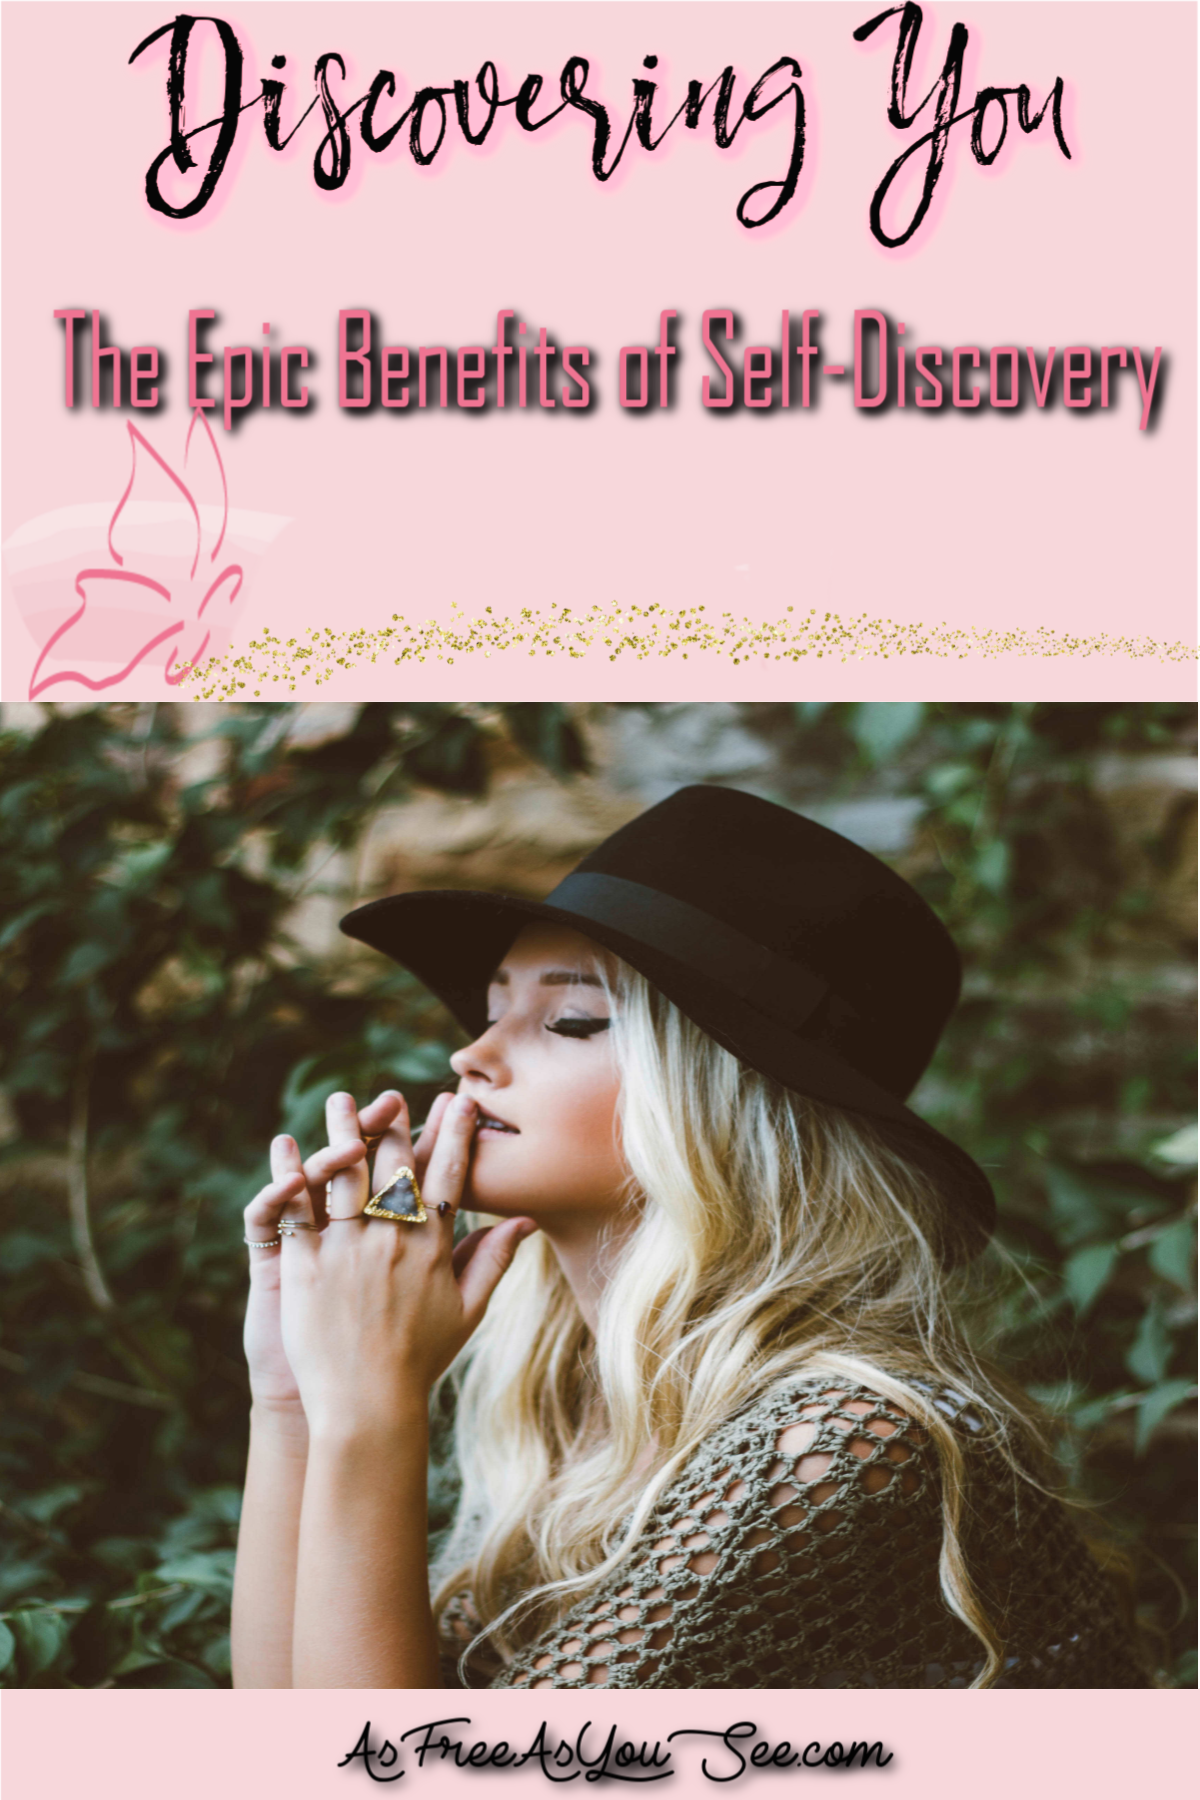 In this self-discovery self-help blog, learn what self-discovery means, how you can start this amazingly beneficial journey and what the major benefits of knowing and understanding yourself can do for your life.